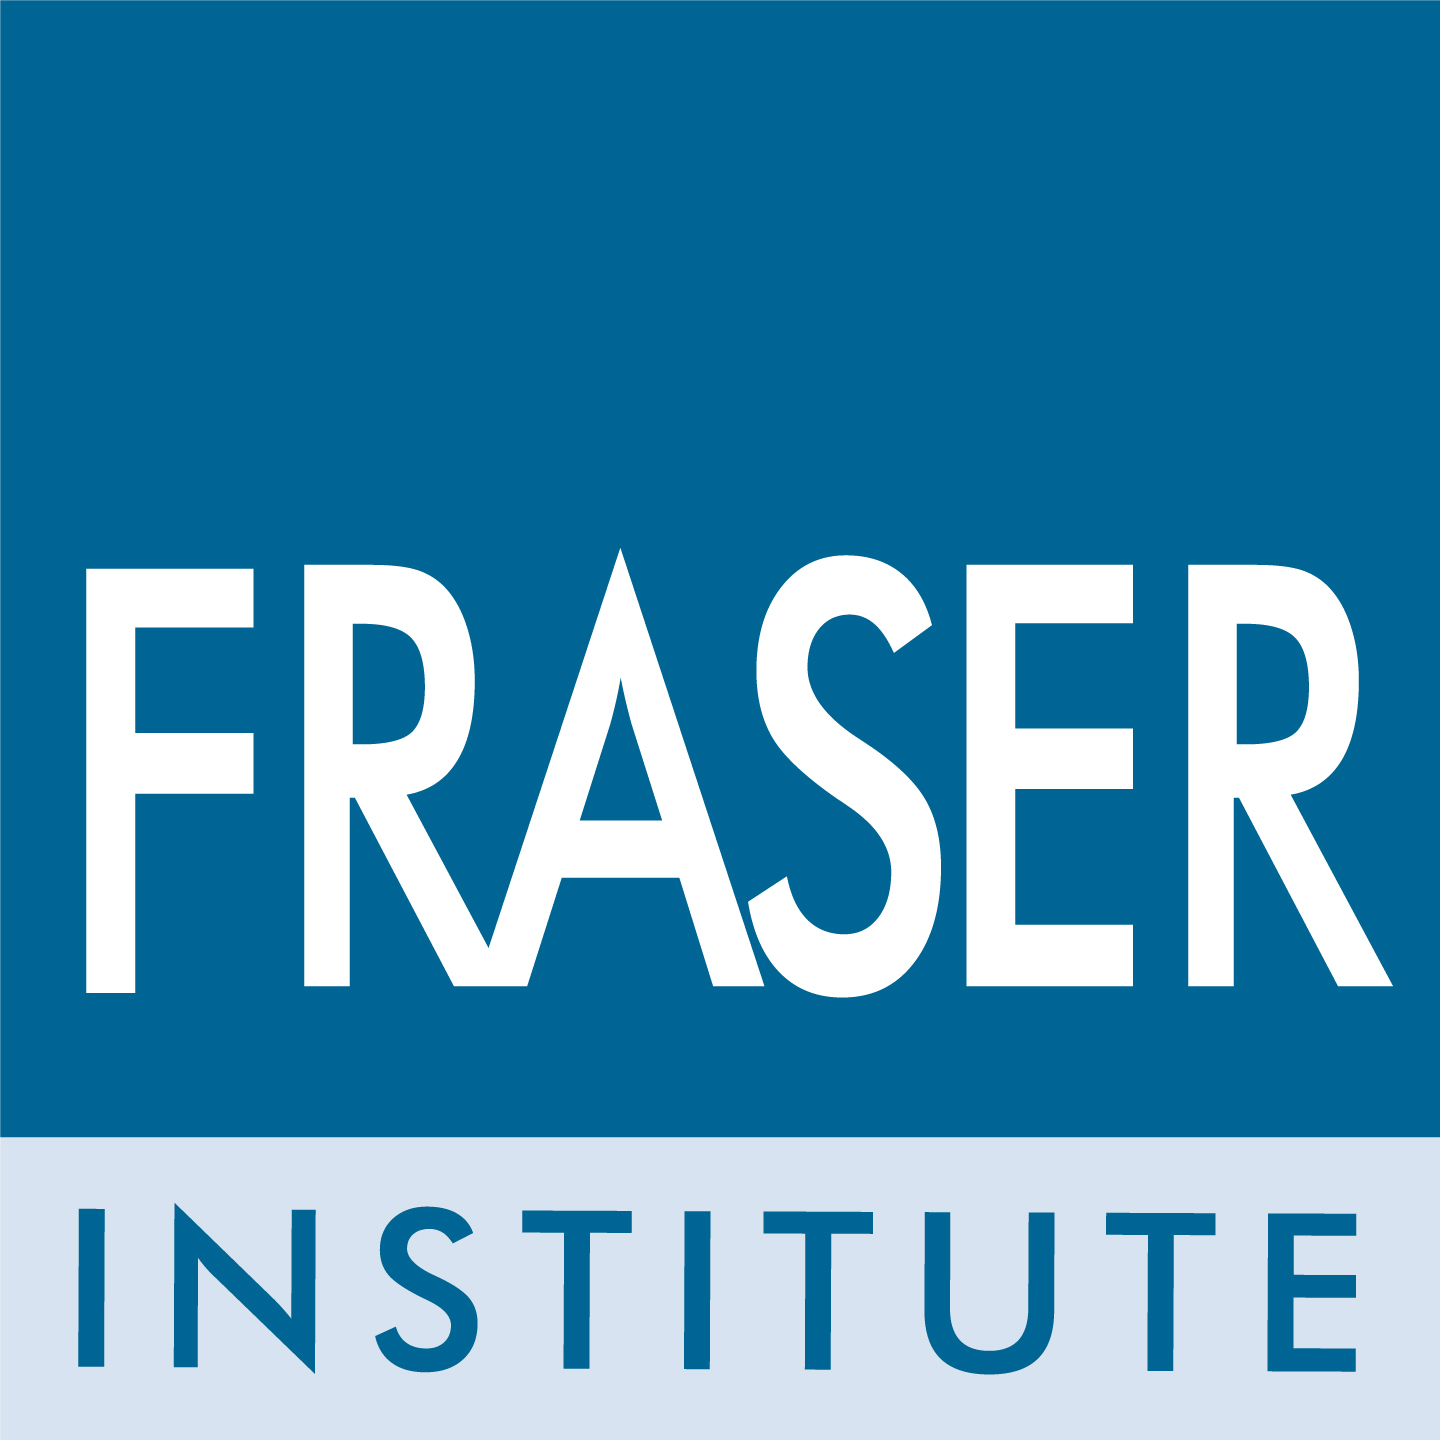 Fraser Institute News Release: Ontario parents lack school choice compared to other provinces and western, developed jurisdictions around the world